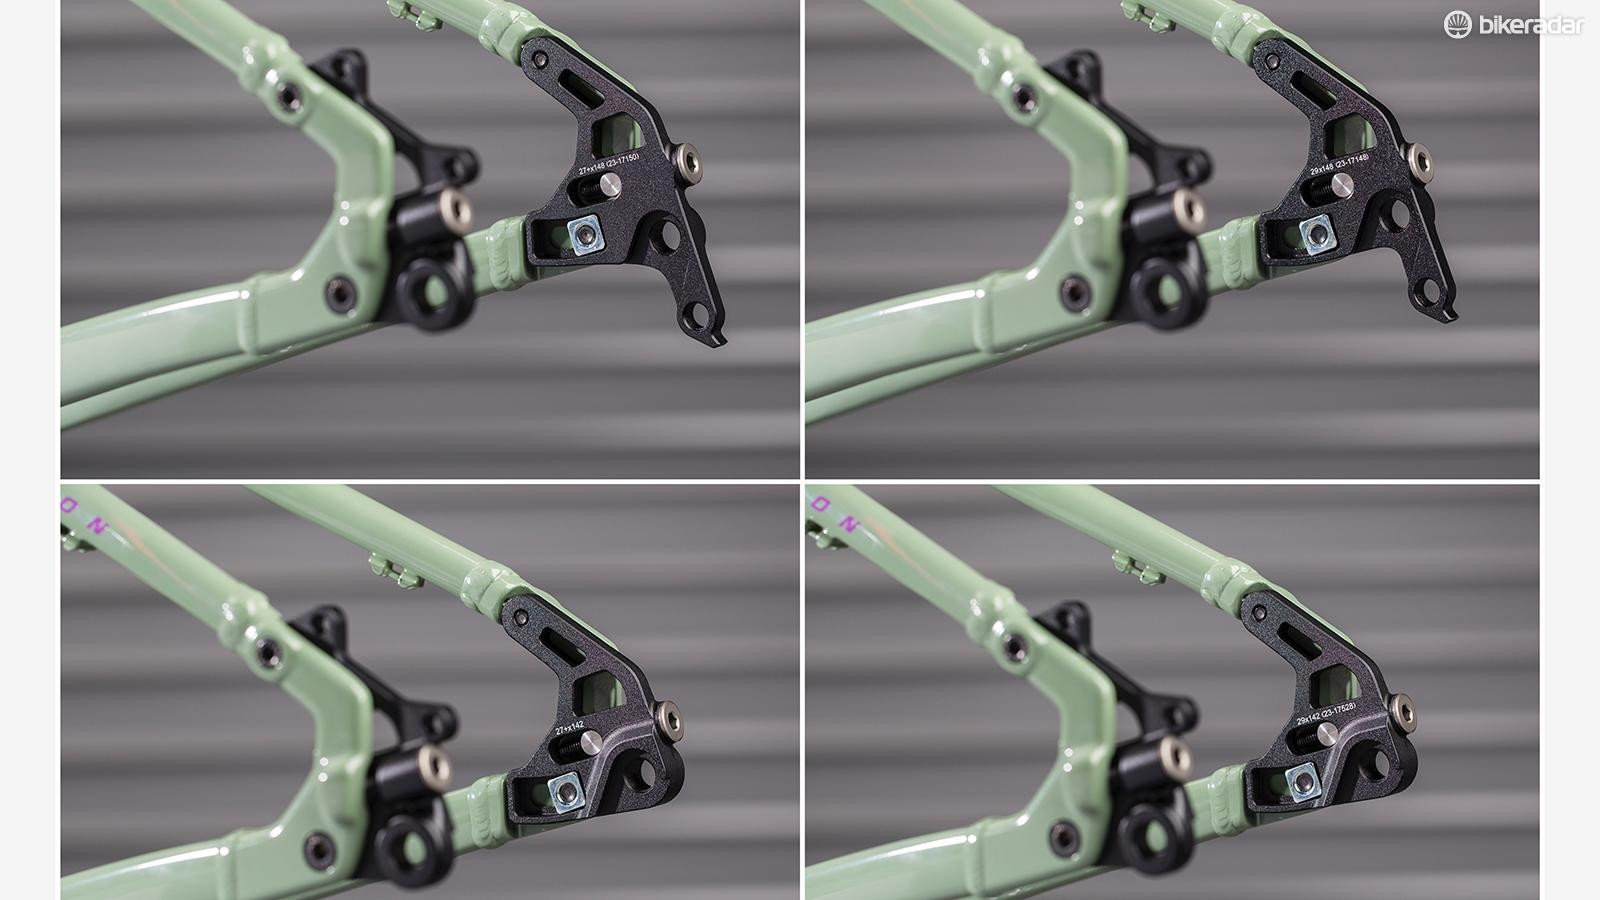 The Chameleon comes with uses modular dropouts that allow it to be set up with gears or as a singlespeed